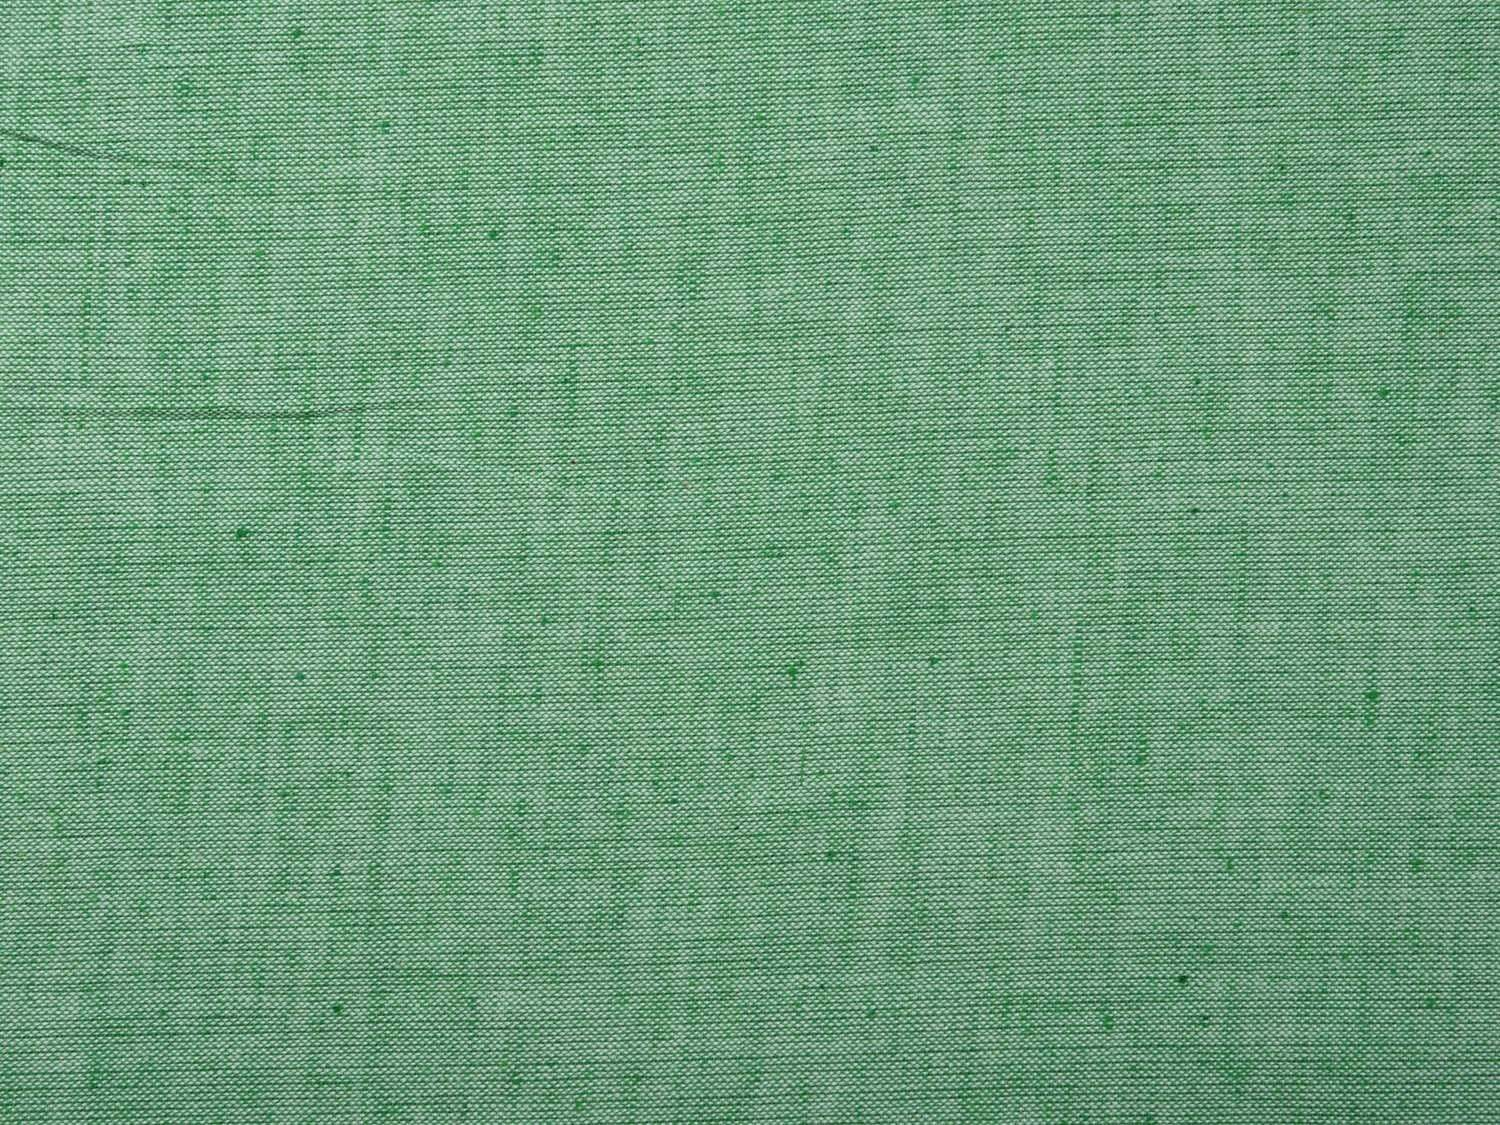 Sea Green Cotton Handloom Fabric Material with Plain Design f0150